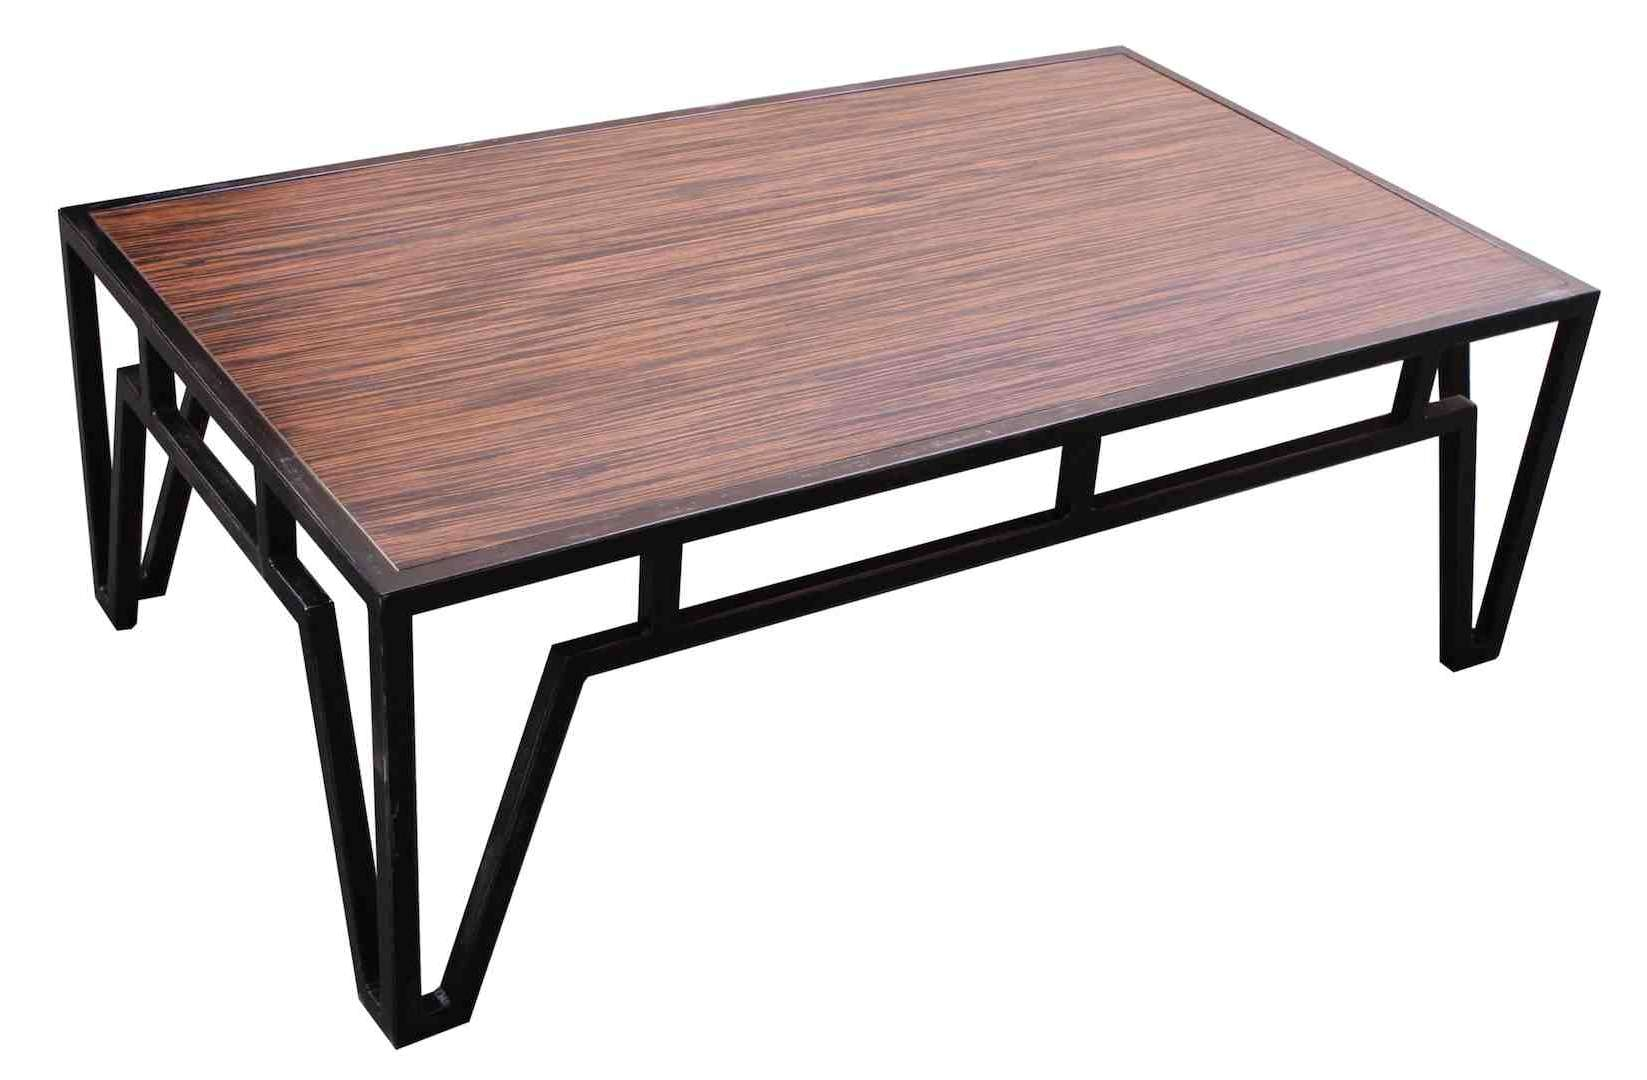 Fashionable Wood And Steel Coffee Table For Coffee Table: Amazing Metal Coffee Tables Design Black Metal (View 3 of 20)